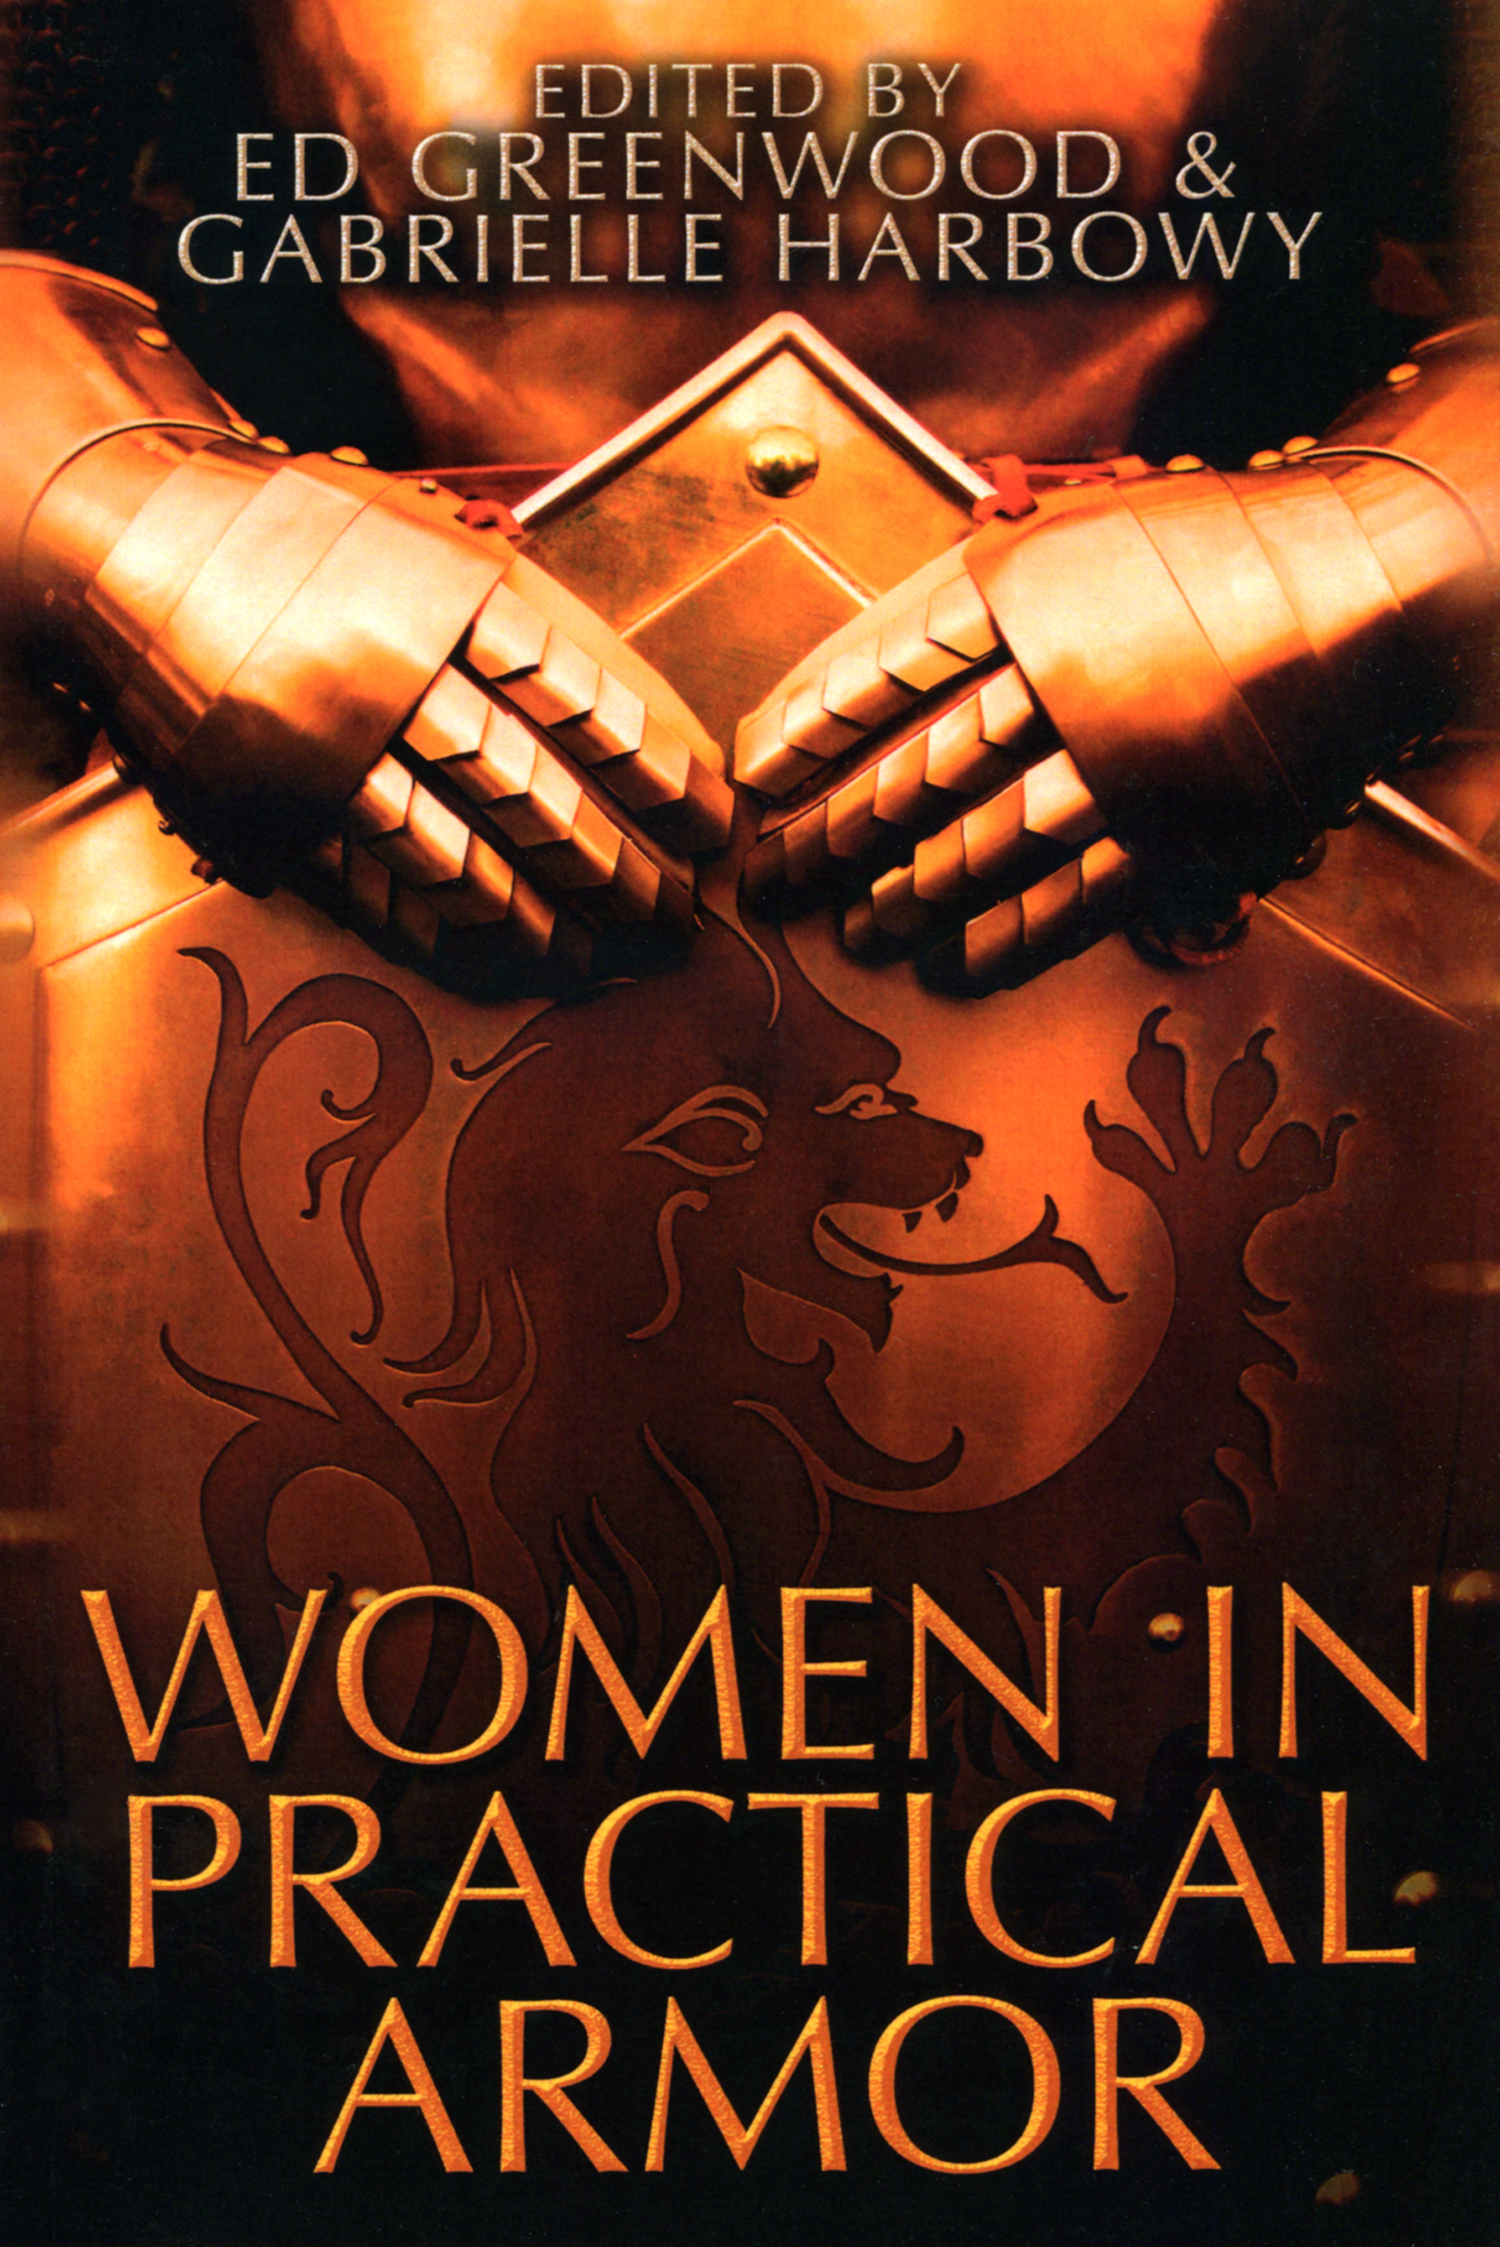 """""""Women in Practical Armor"""" edited by Ed Greenwood and Gabrielle Harbowy."""